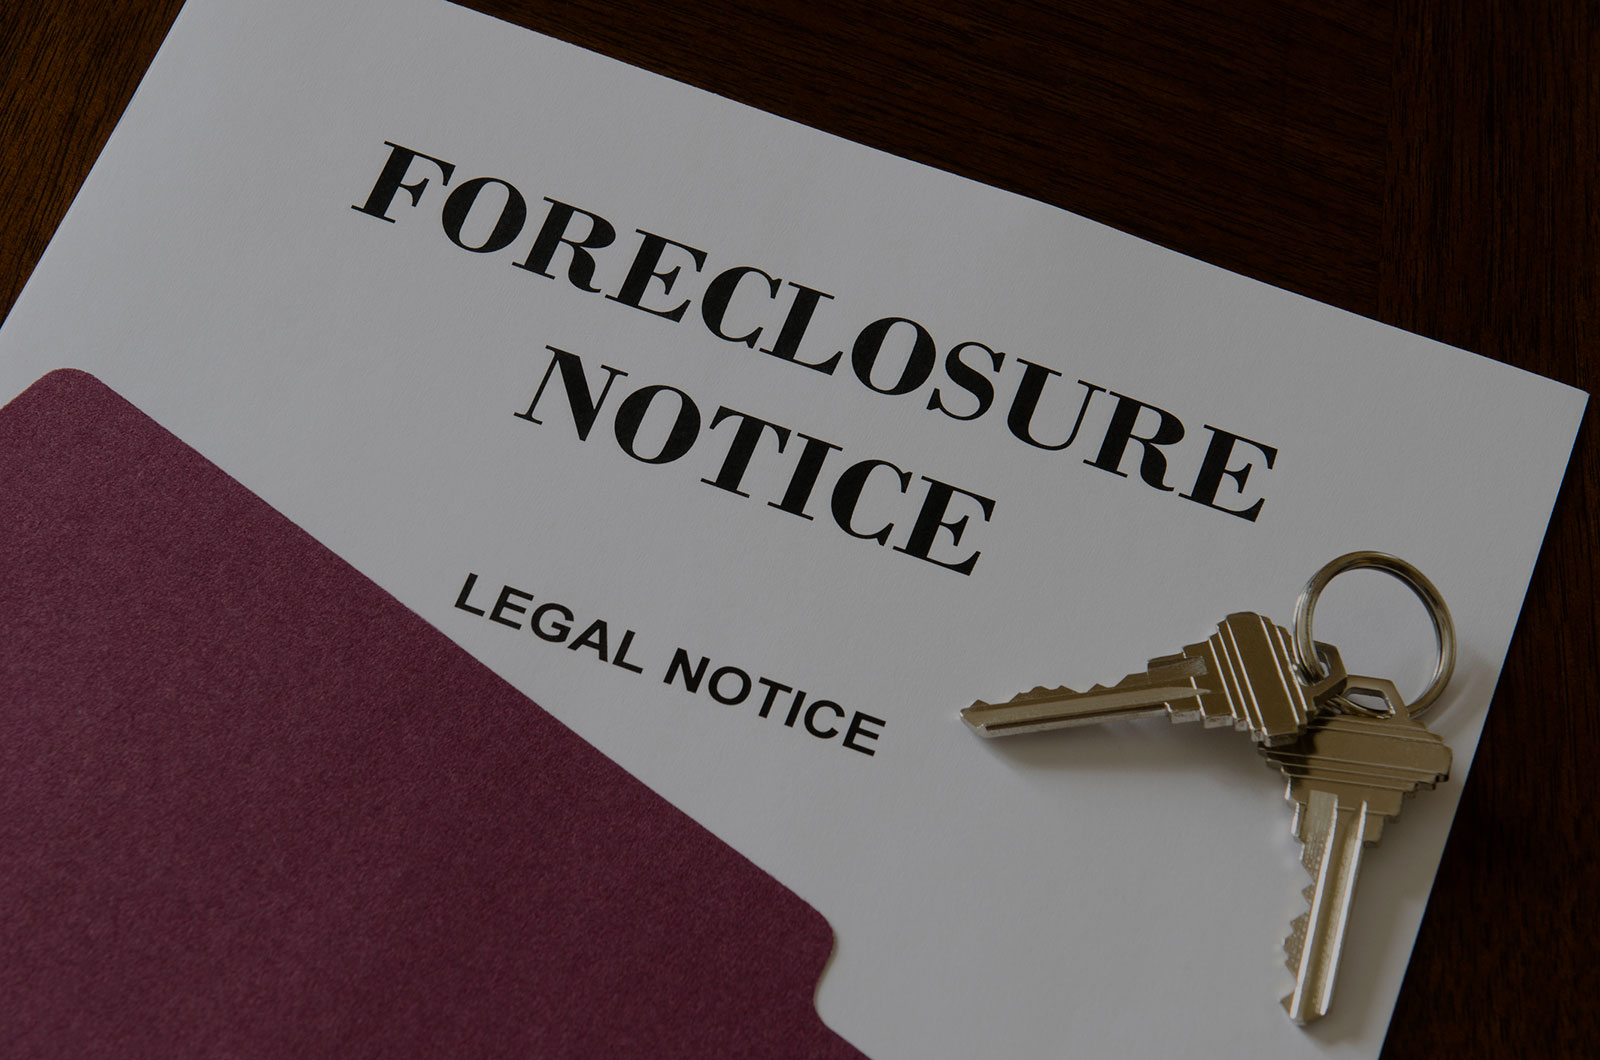 Real Estate Transactions & Litigation Header Background - Foreclosure Notice with Keys on Top